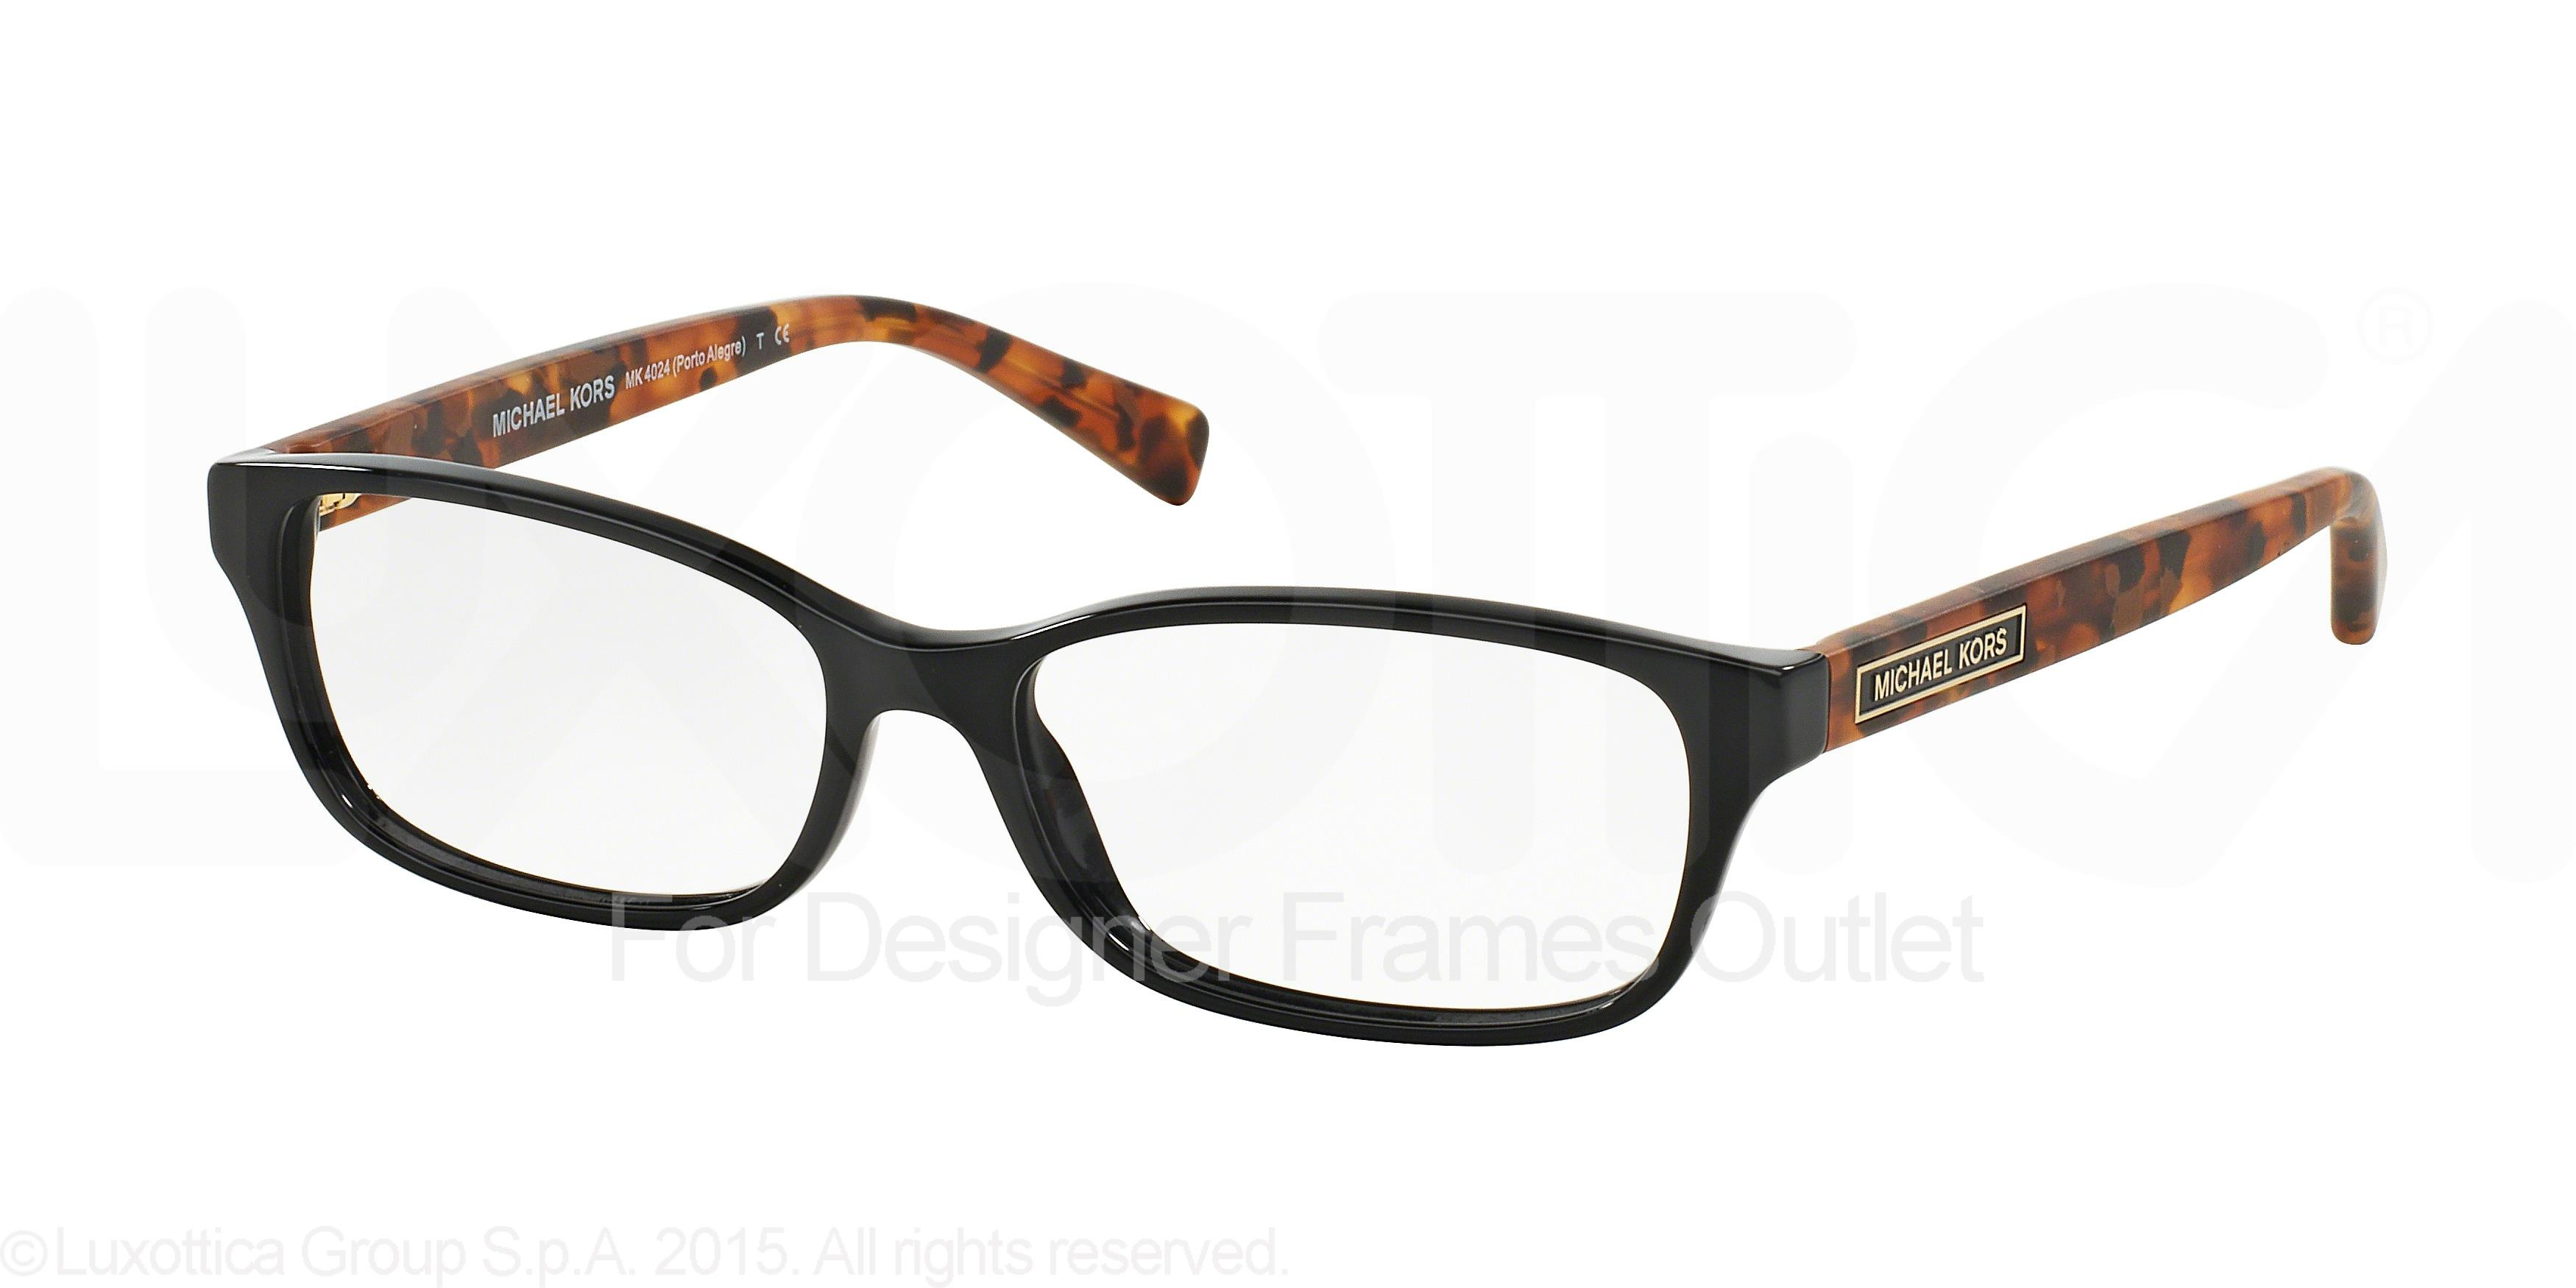 3065 Black Brown Tortoise